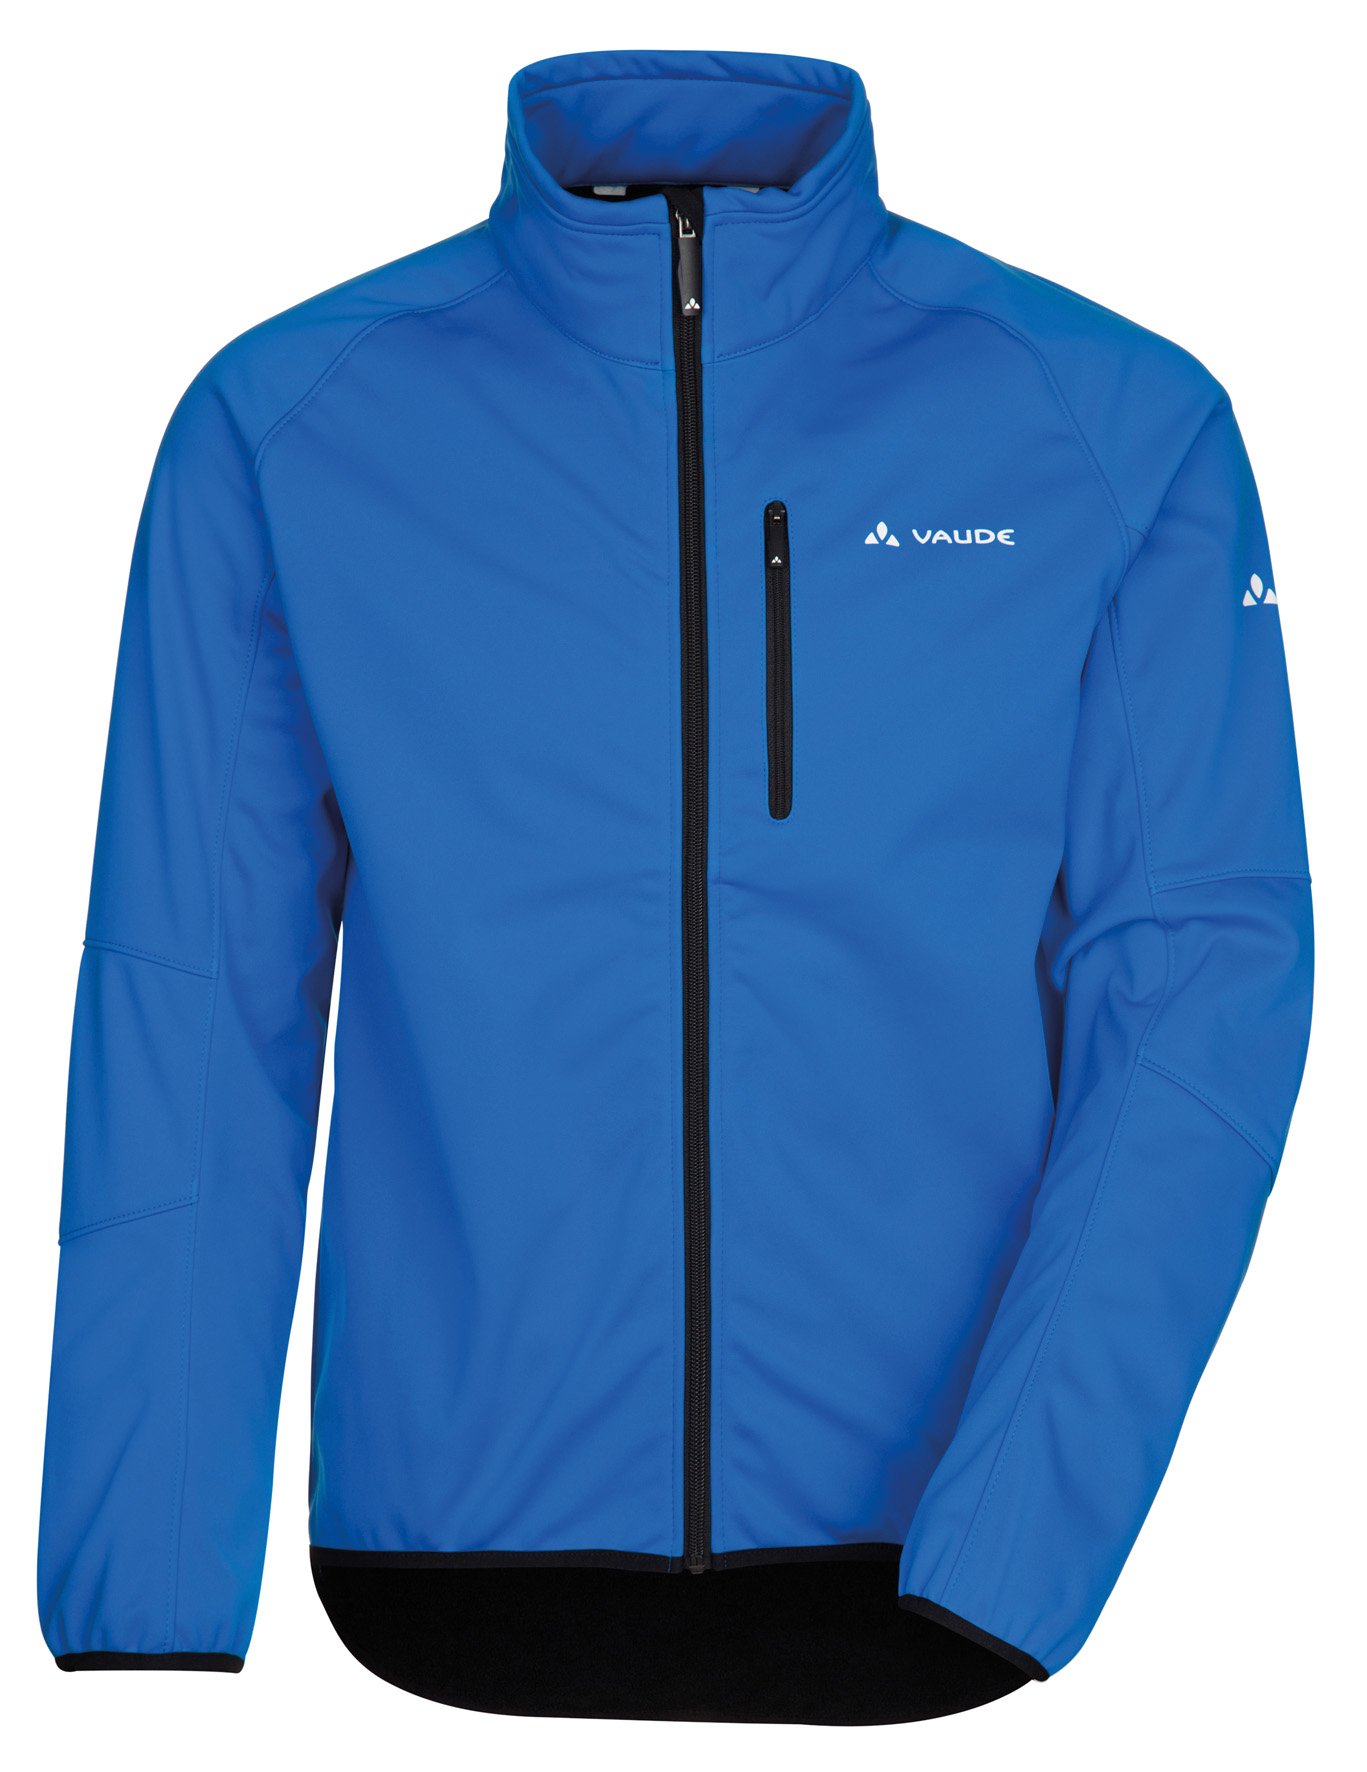 VAUDE Men´s Spectra Softshell Jacket hydro blue Größe XL - schneider-sports